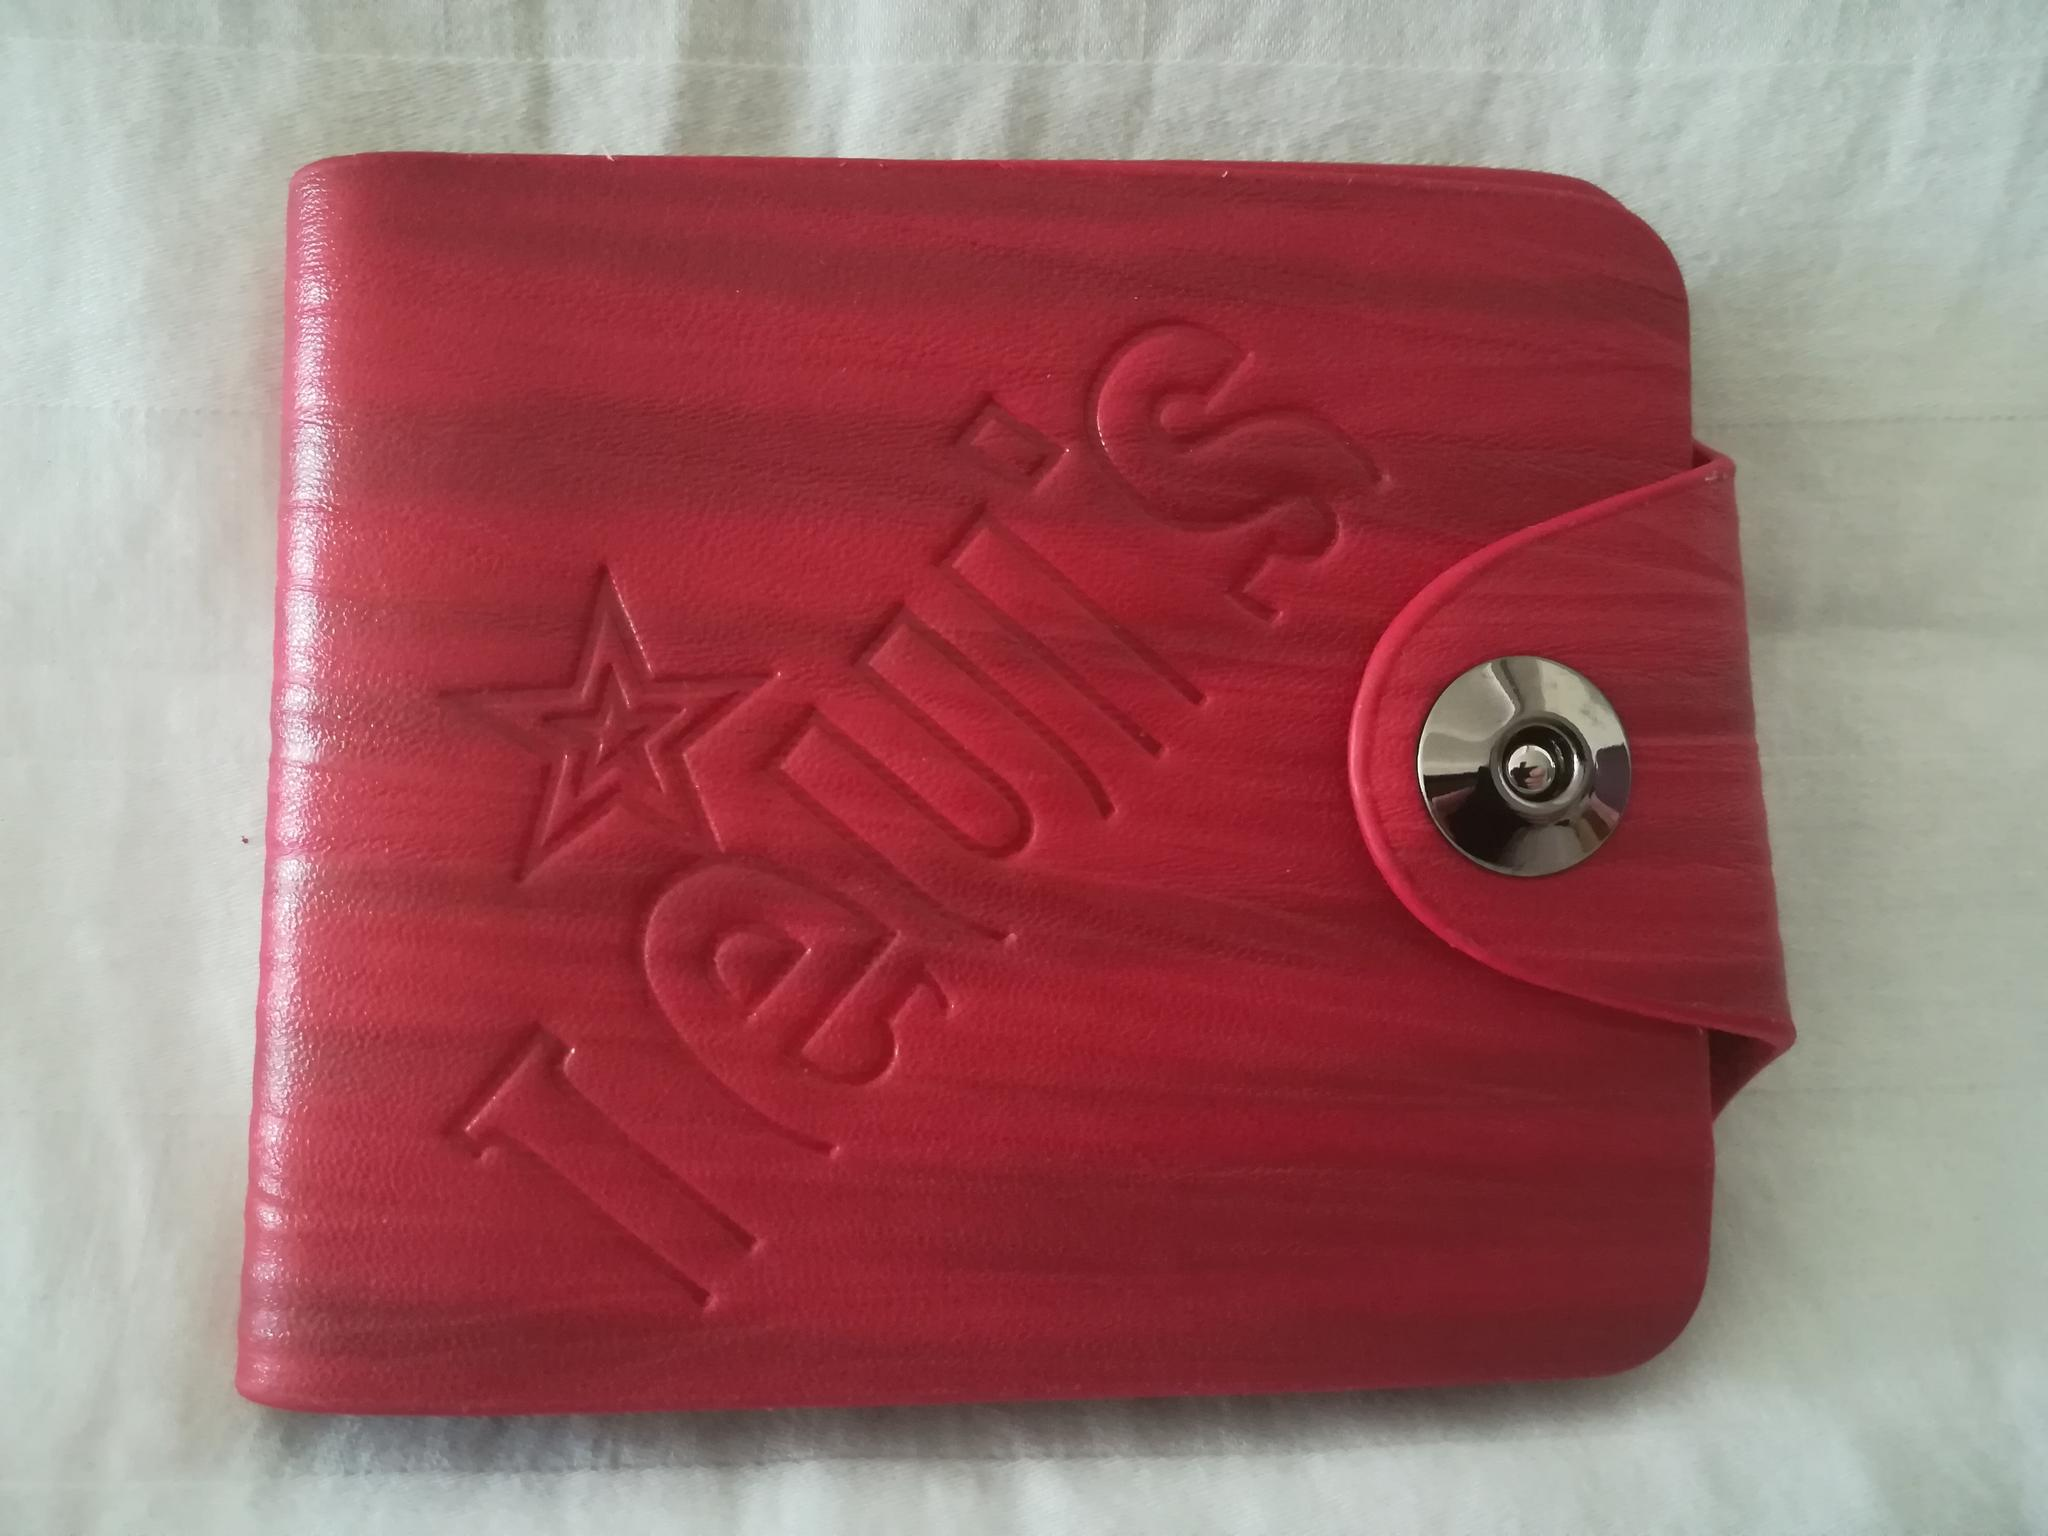 Red leather wallet, brand new